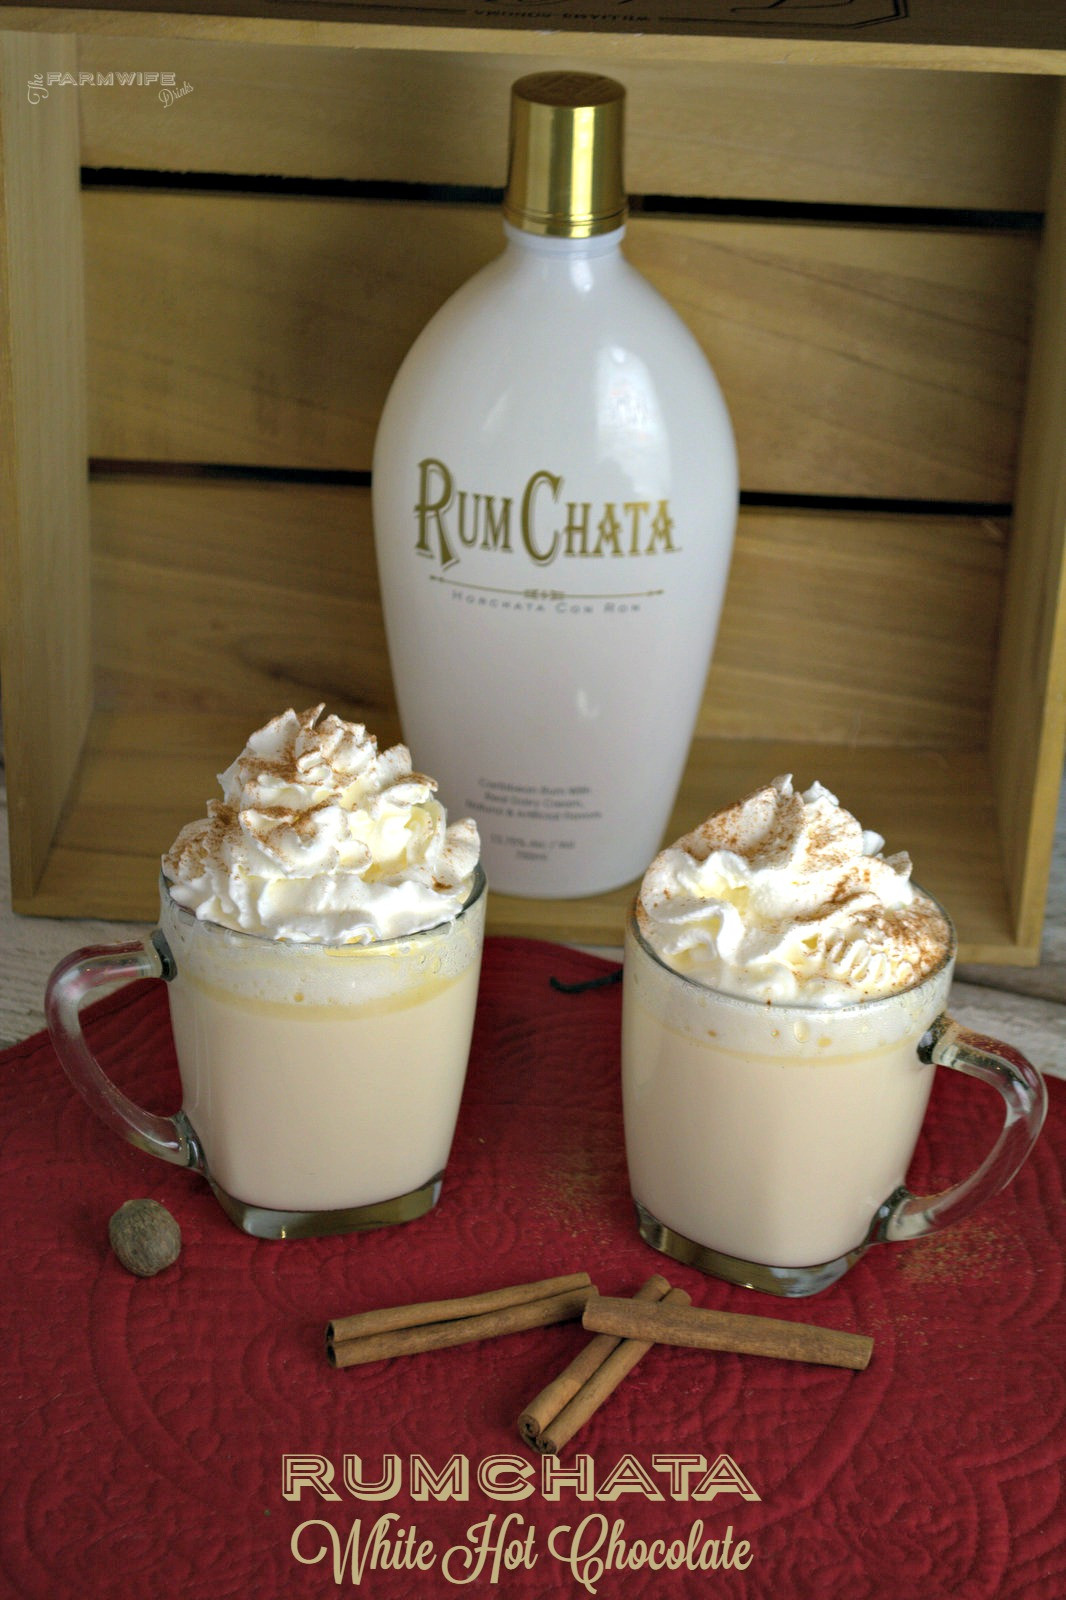 Drinks To Make With Rum Chata  Crock Pot RumChata White Hot Chocolate The Farmwife Drinks